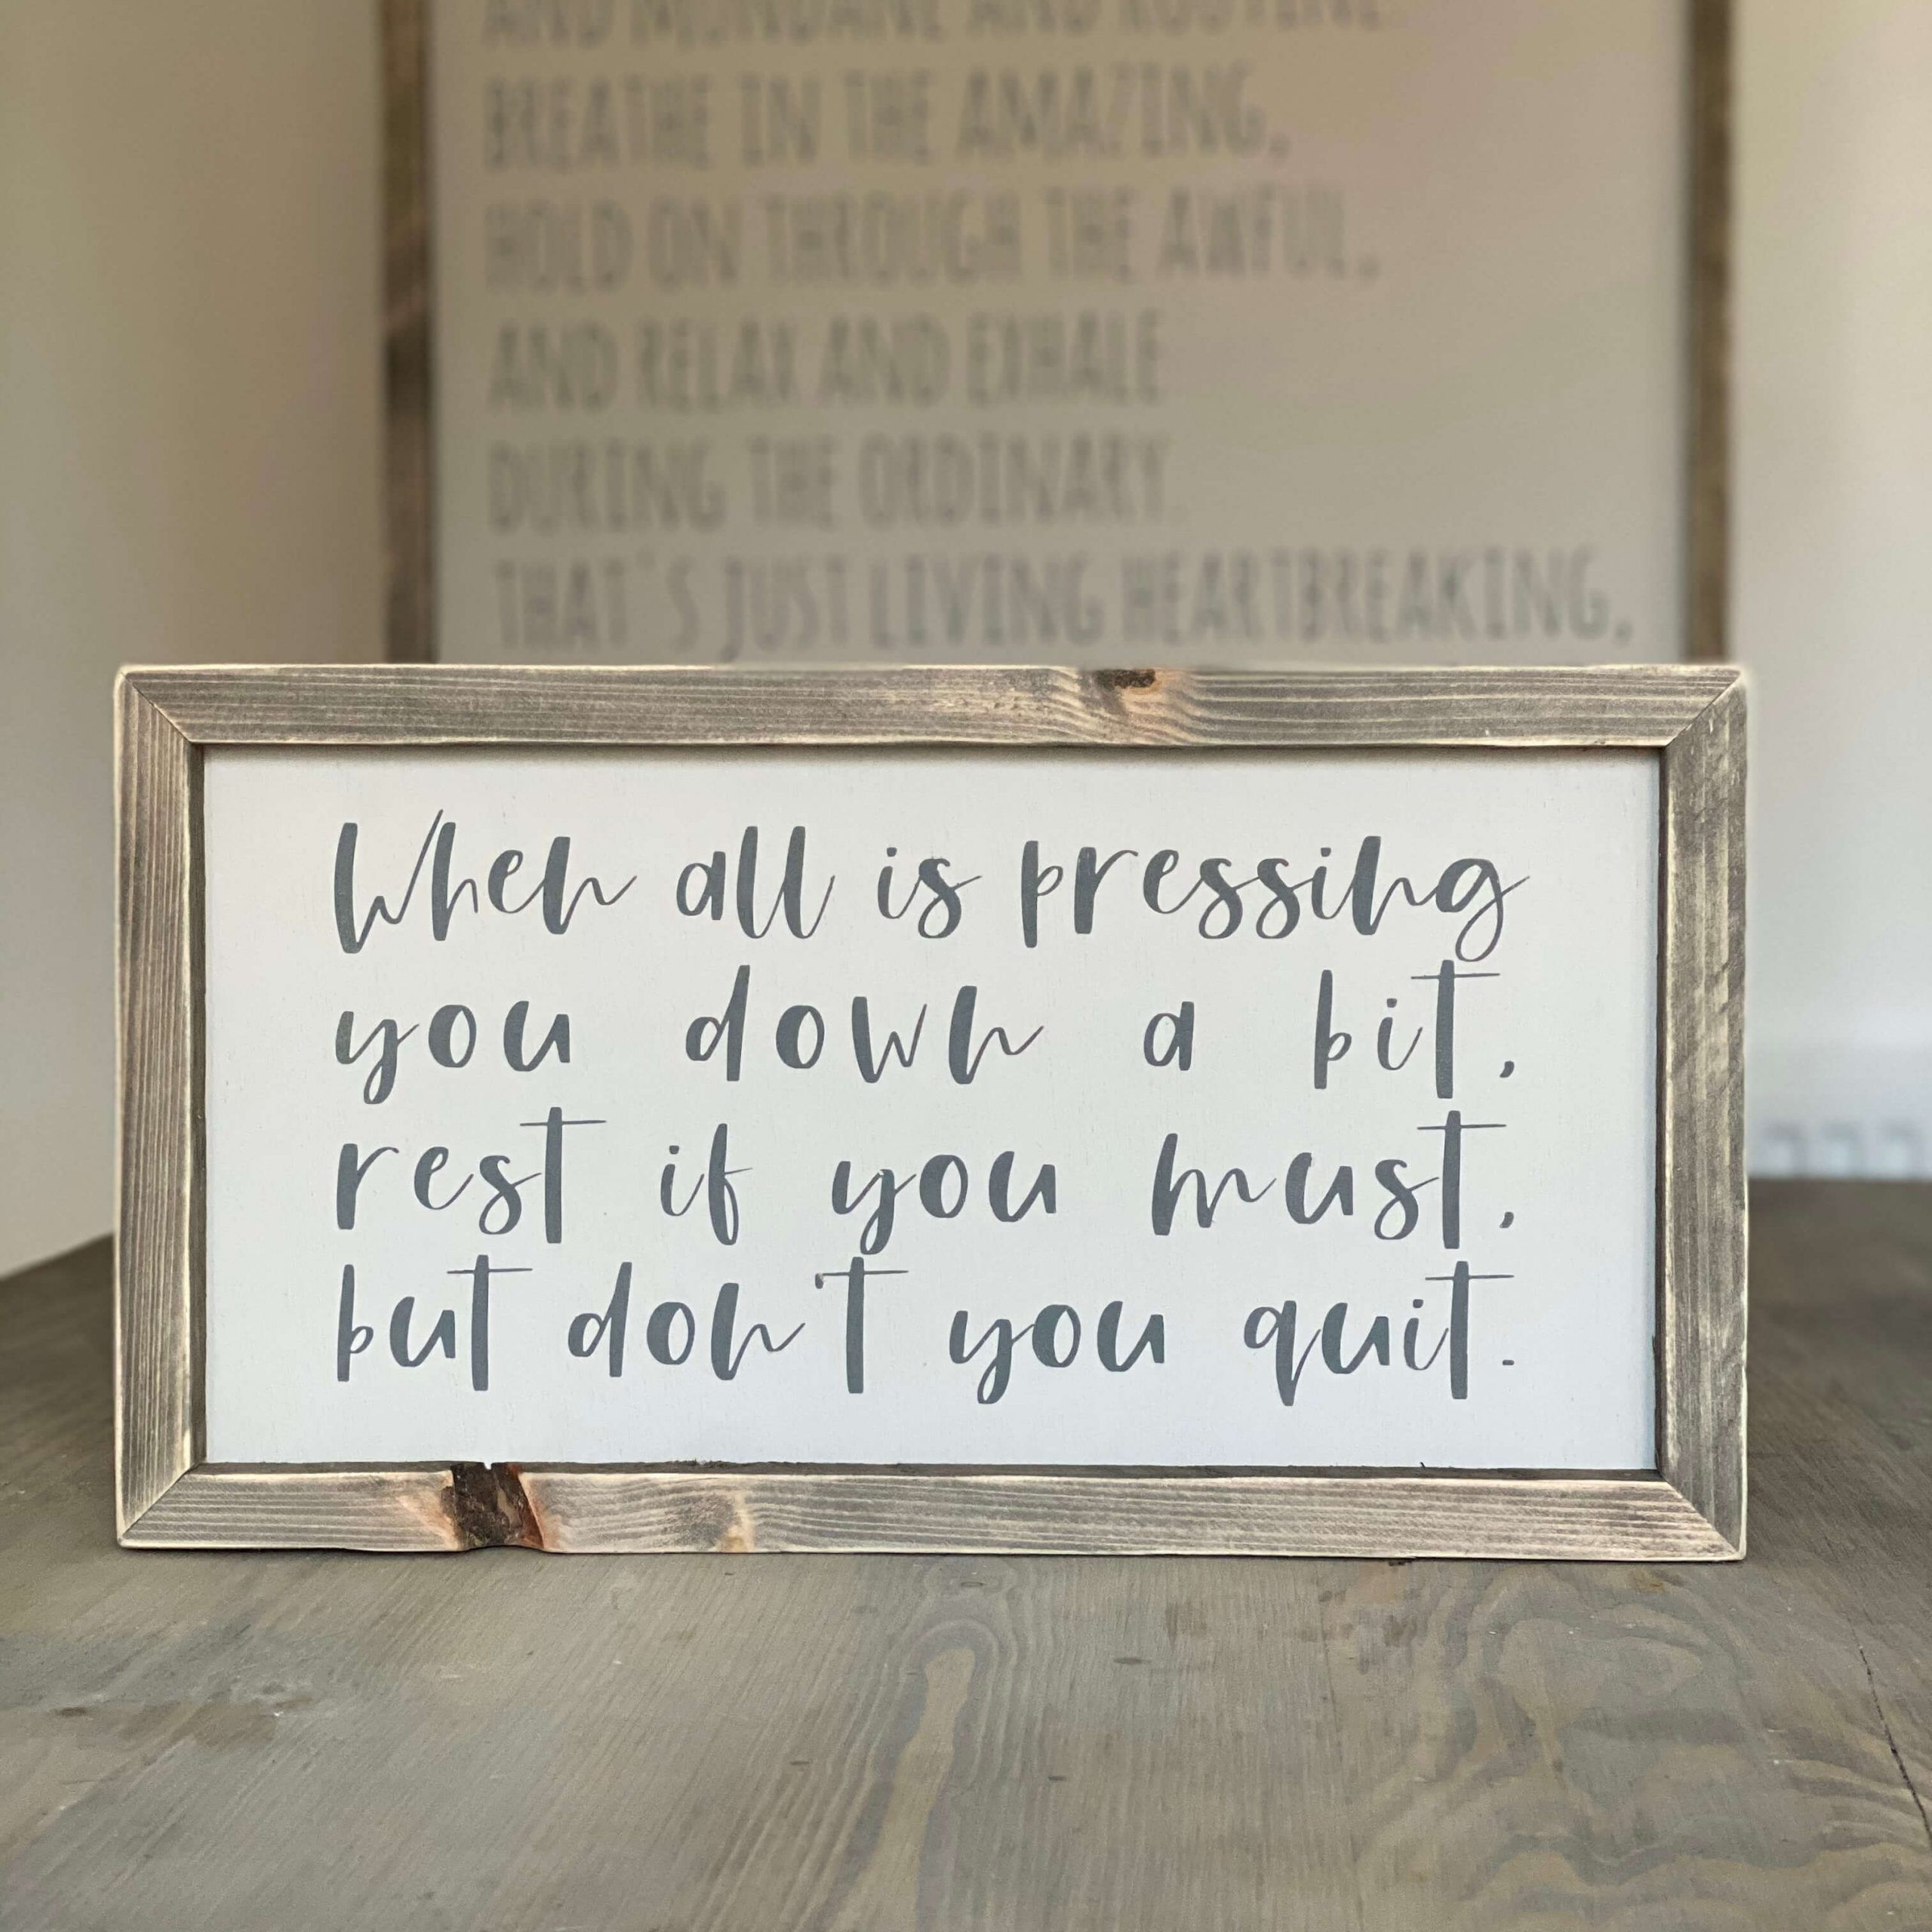 Dont you quit - rustic framed wooden sign